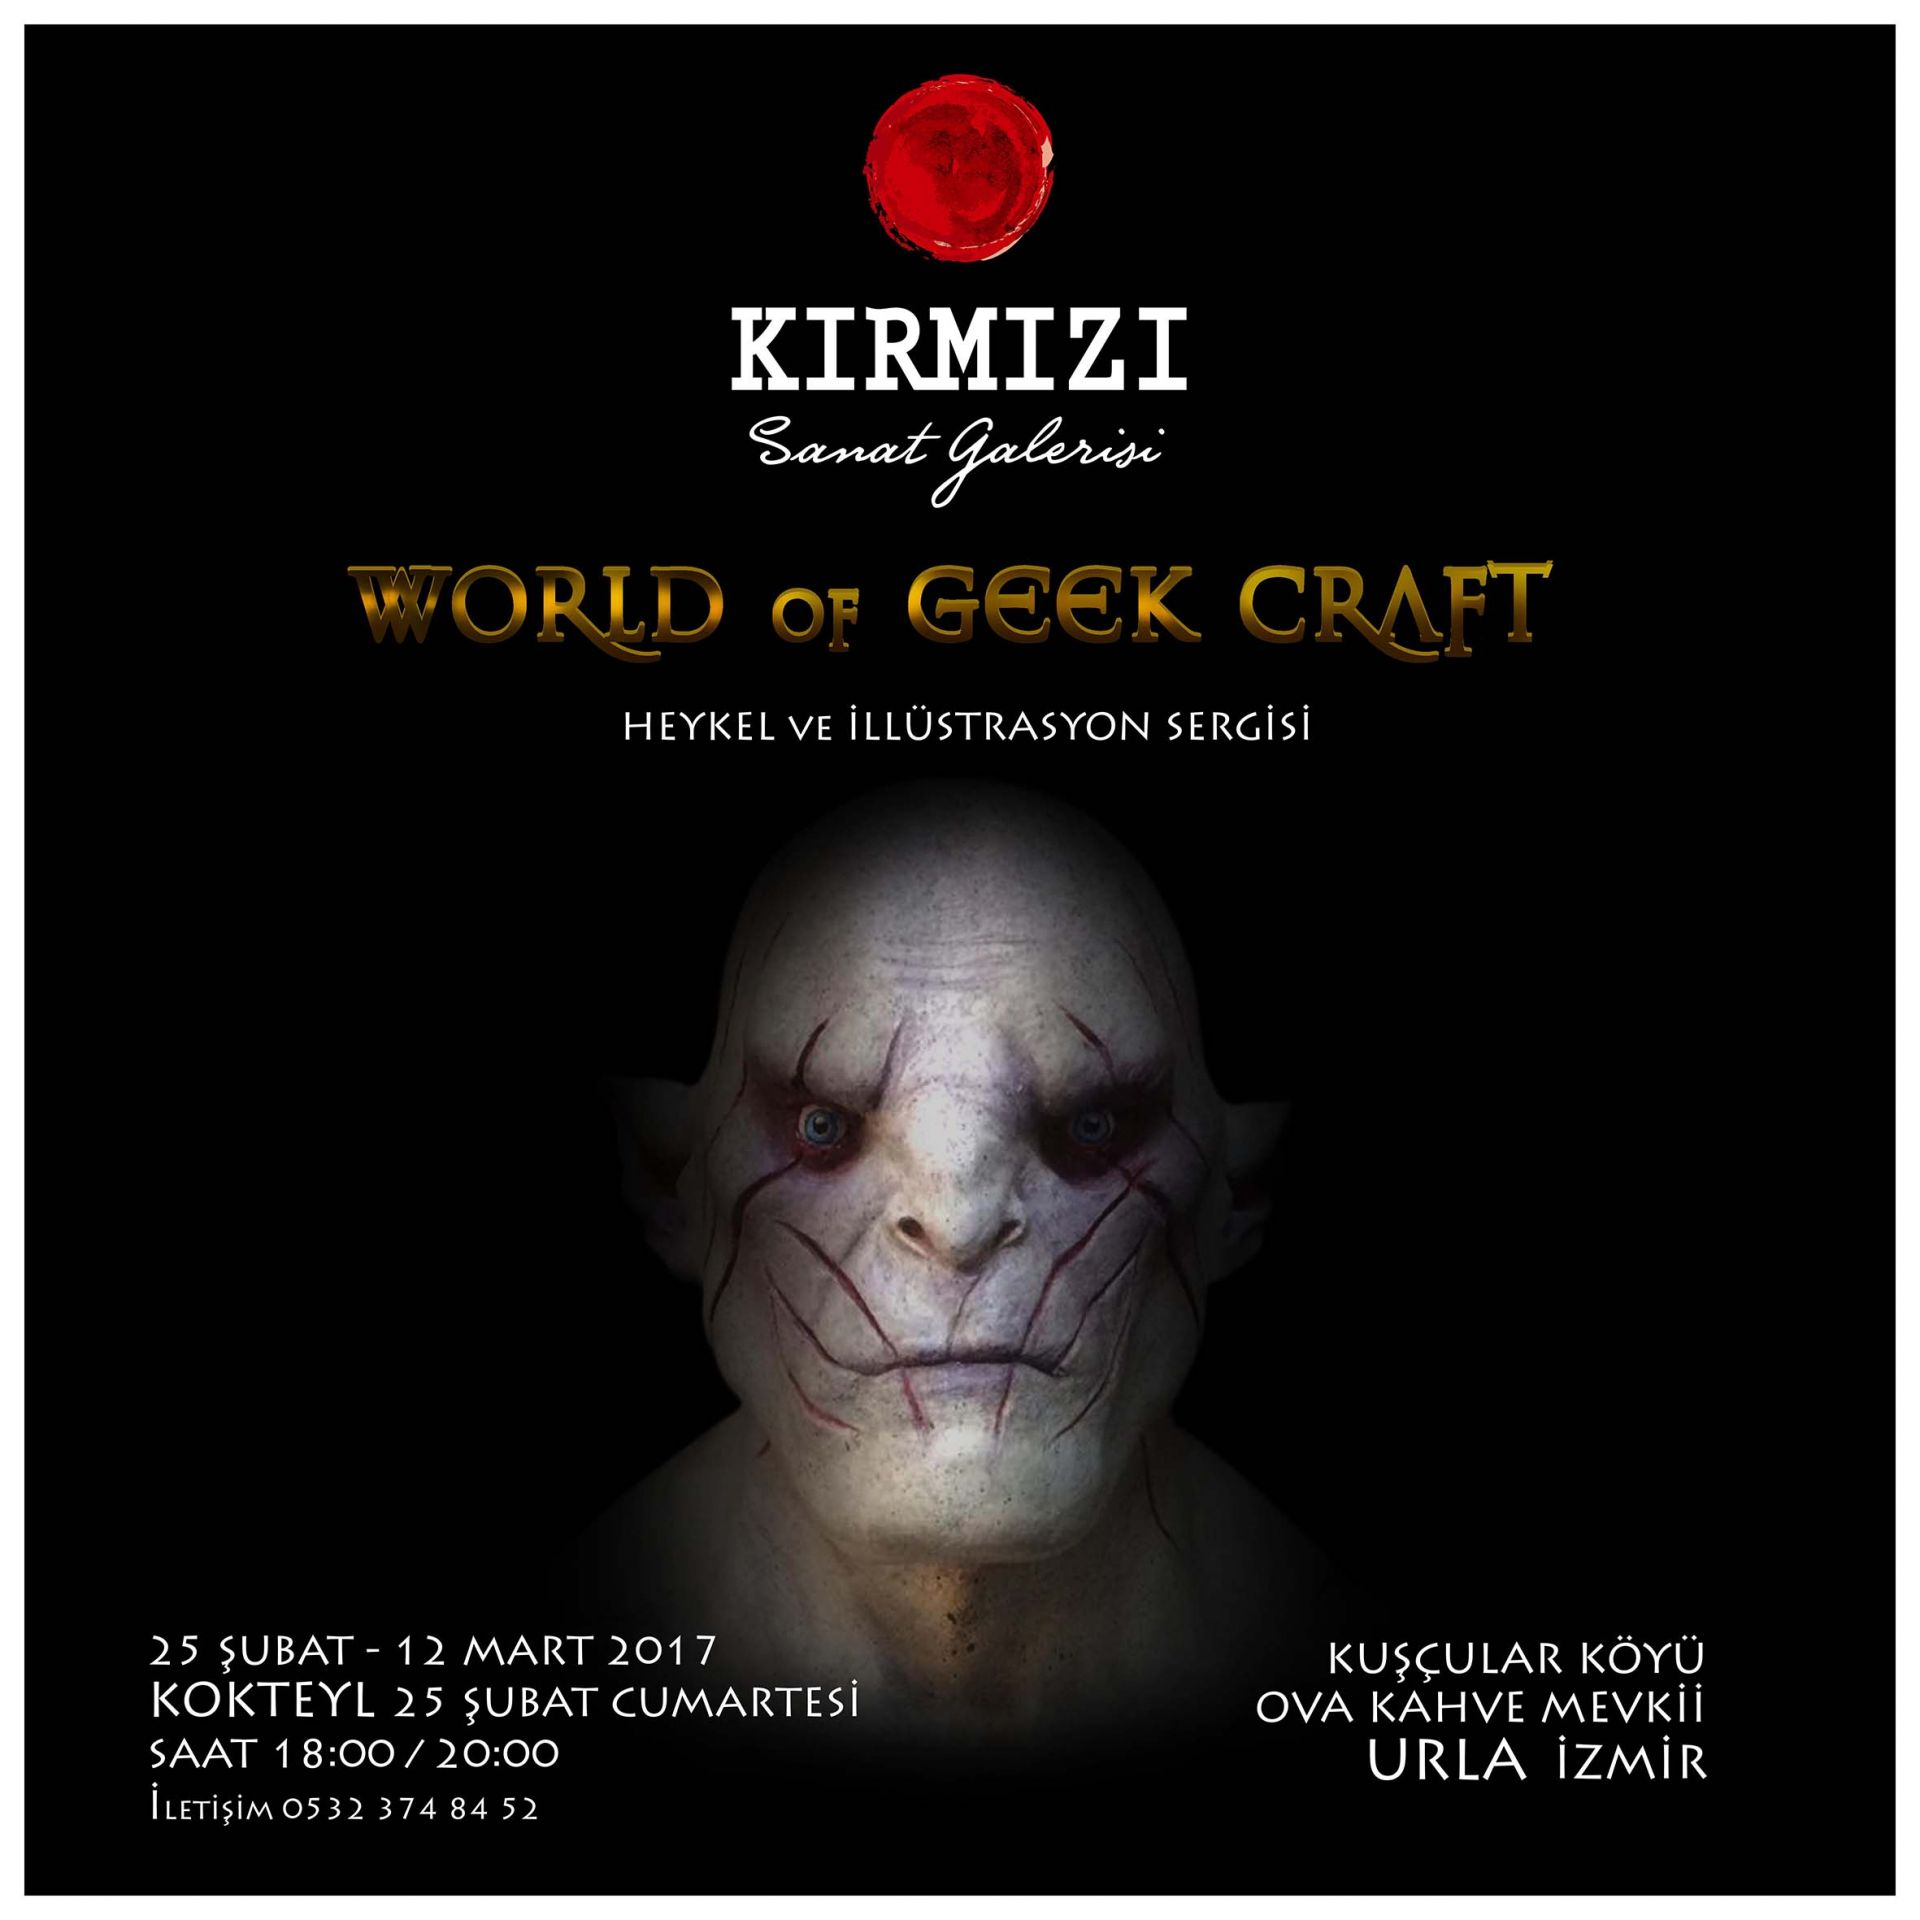 WORLD OF GEEK CRAFT